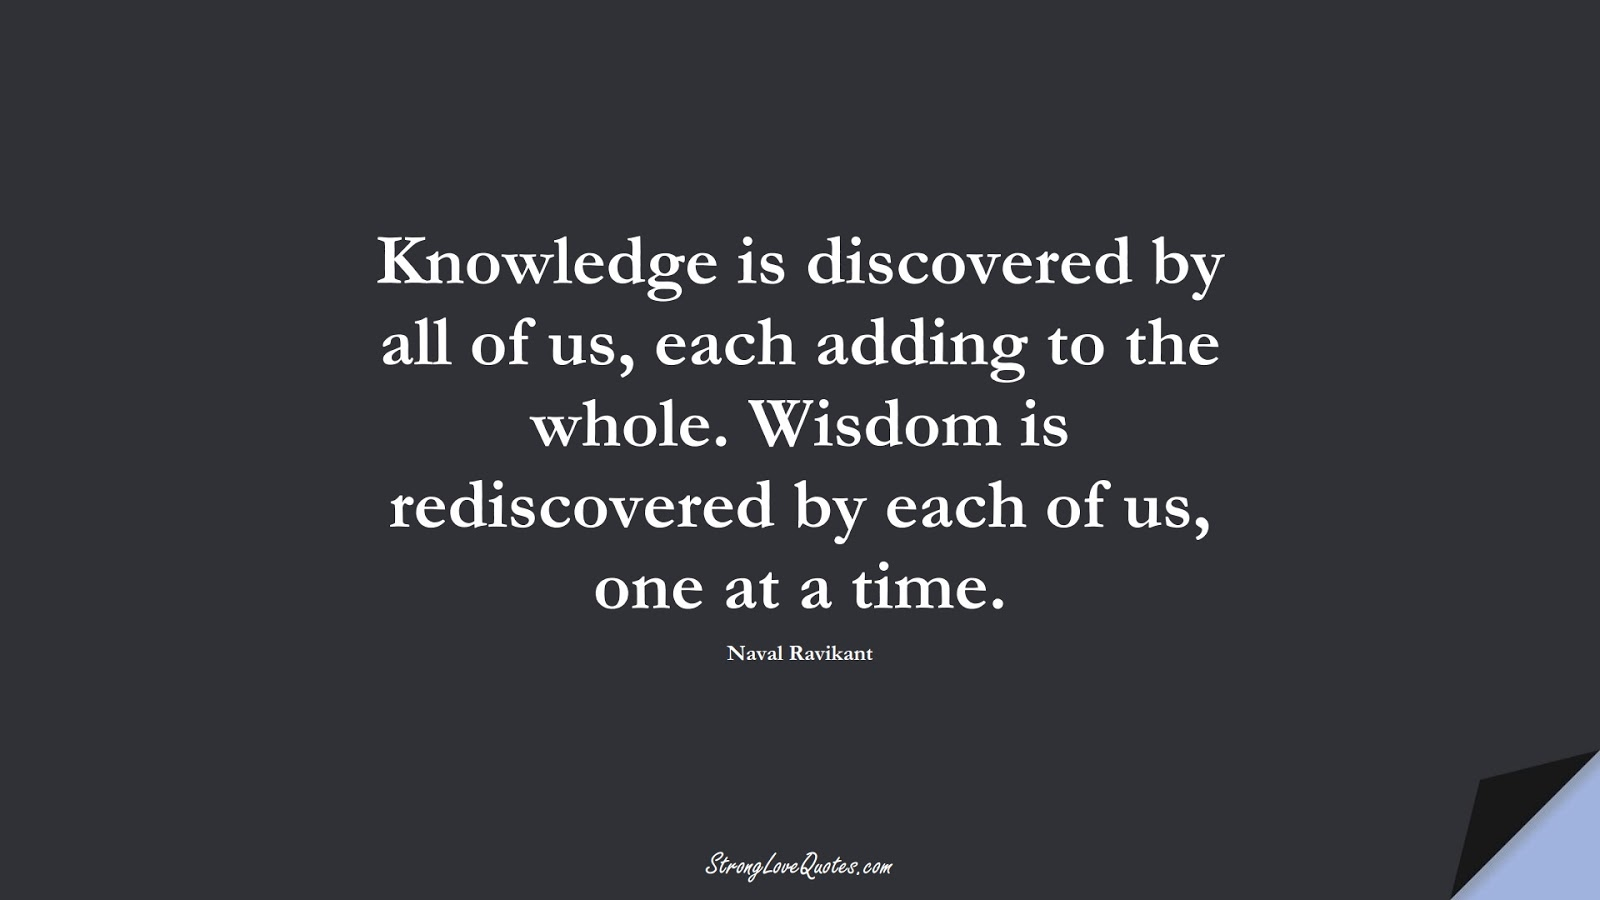 Knowledge is discovered by all of us, each adding to the whole. Wisdom is rediscovered by each of us, one at a time. (Naval Ravikant);  #KnowledgeQuotes